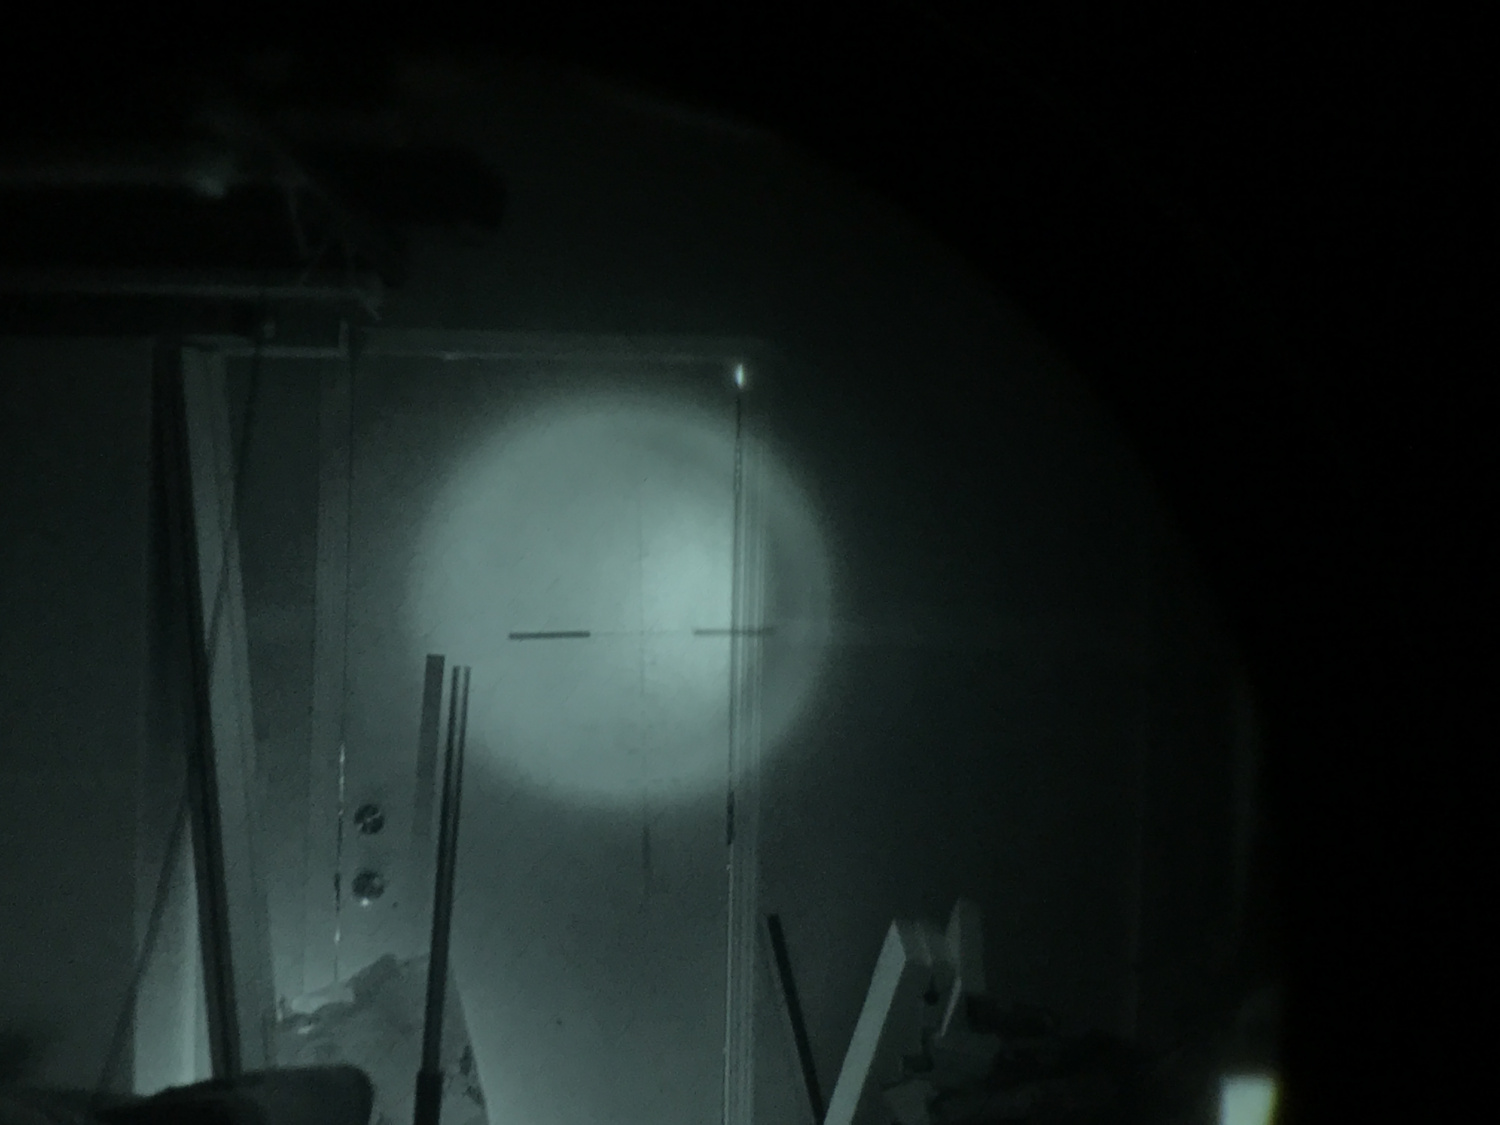 Infrared projected reticle of Elcan Spectre